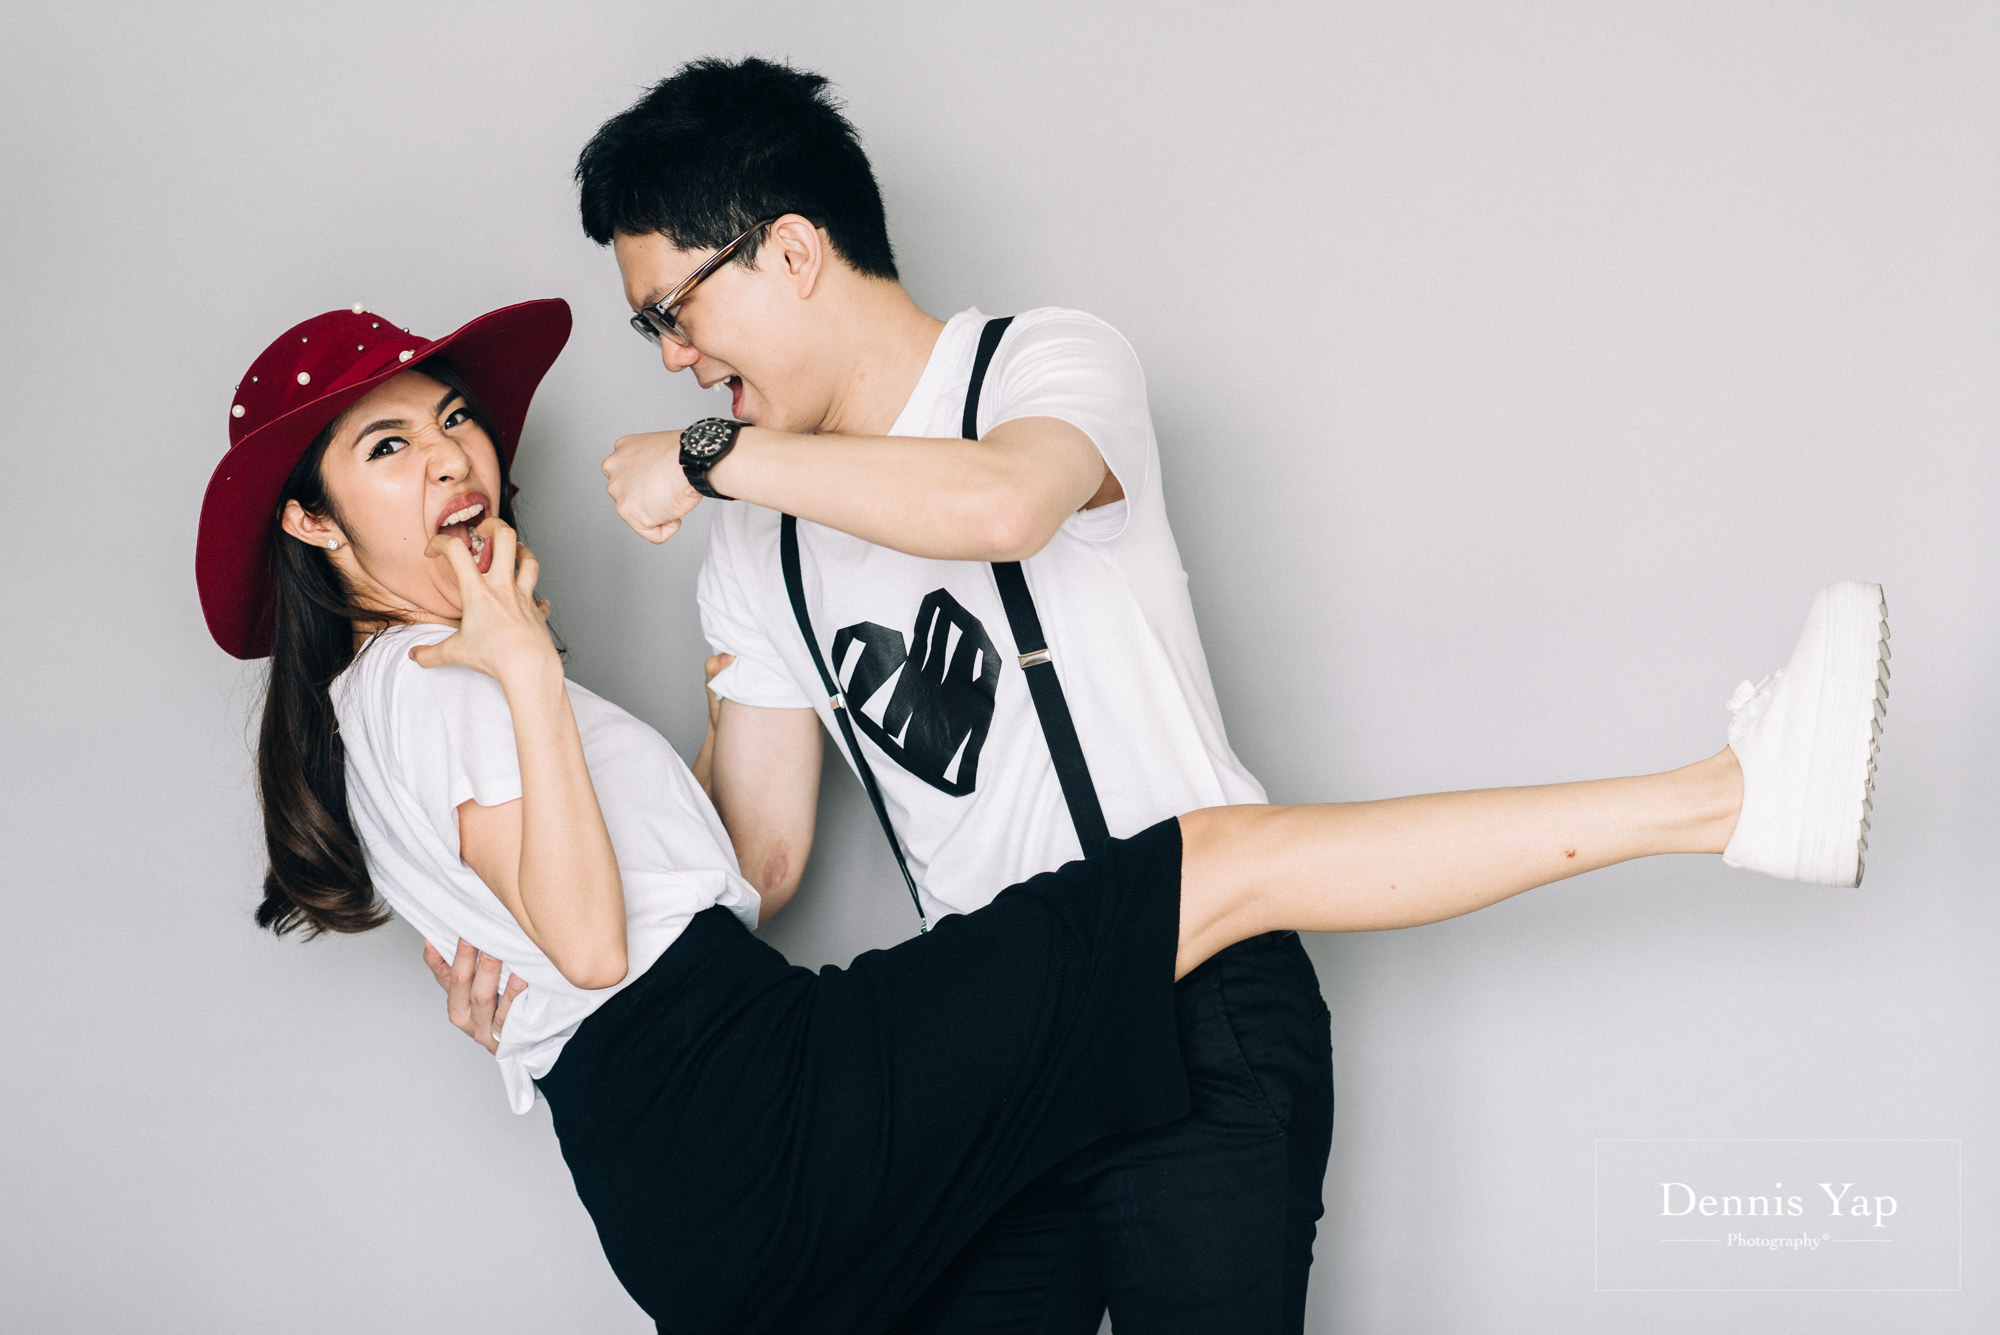 isaac evon family baby portrait funny style dennis yap photography-4.jpg